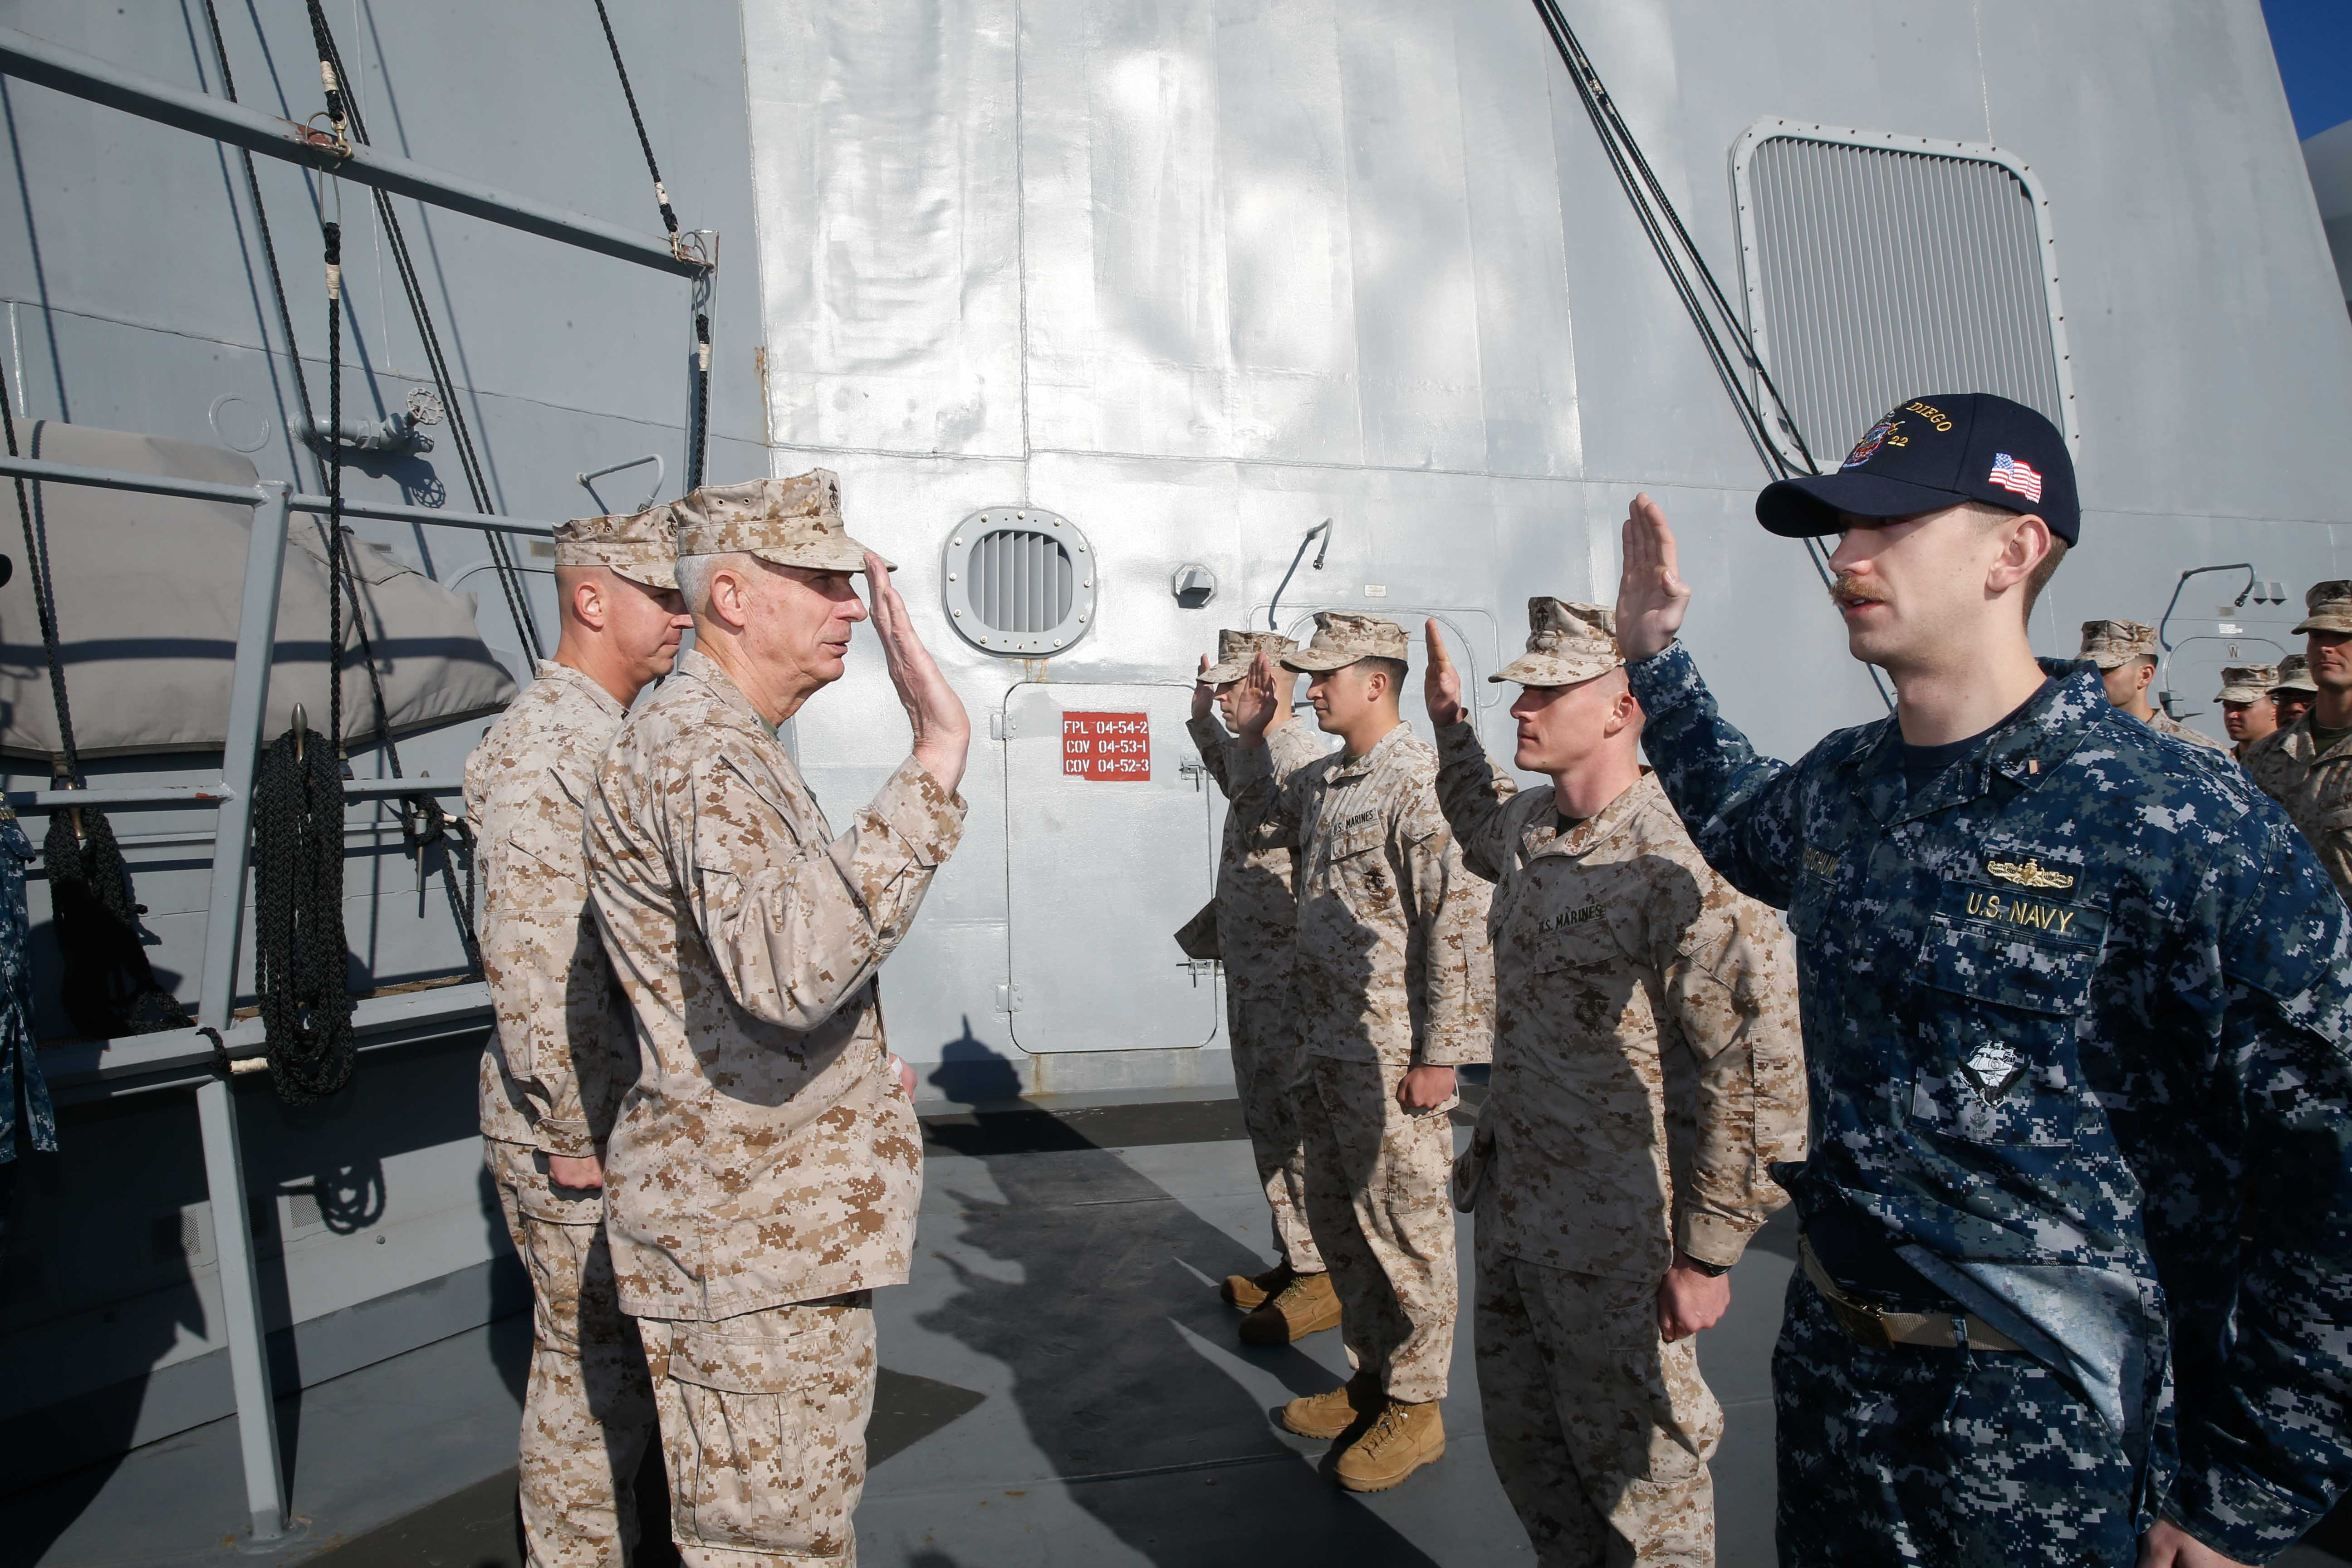 MEDITERRANEAN SEA (Nov. 29, 2017) – U.S. Marine Corps Gen. Thomas D. Waldhauser, Commander, U.S. Africa Command, recites an Oath with Marines and Sailor O3 selects during a promotion ceremony aboard the San Antonio-class amphibious transport dock ship USS San Diego (LPD 22), Nov. 29, 2017. Waldhauser visited the USS San Diego (LPD 22) to personally congratulate Marines and Sailors of the 15th Marine Expeditionary Unit and America Amphibious Ready Group for the work and efforts in supporting missions in the 6th Fleet area of operations. USS San Diego is deployed with the America ARG and 15th MEU to support maritime security operations and theater security cooperation efforts in the U.S. 6th Fleet area of operations.(U.S. Marine Corps photo by Cpl. Jeremy Laboy/Released)